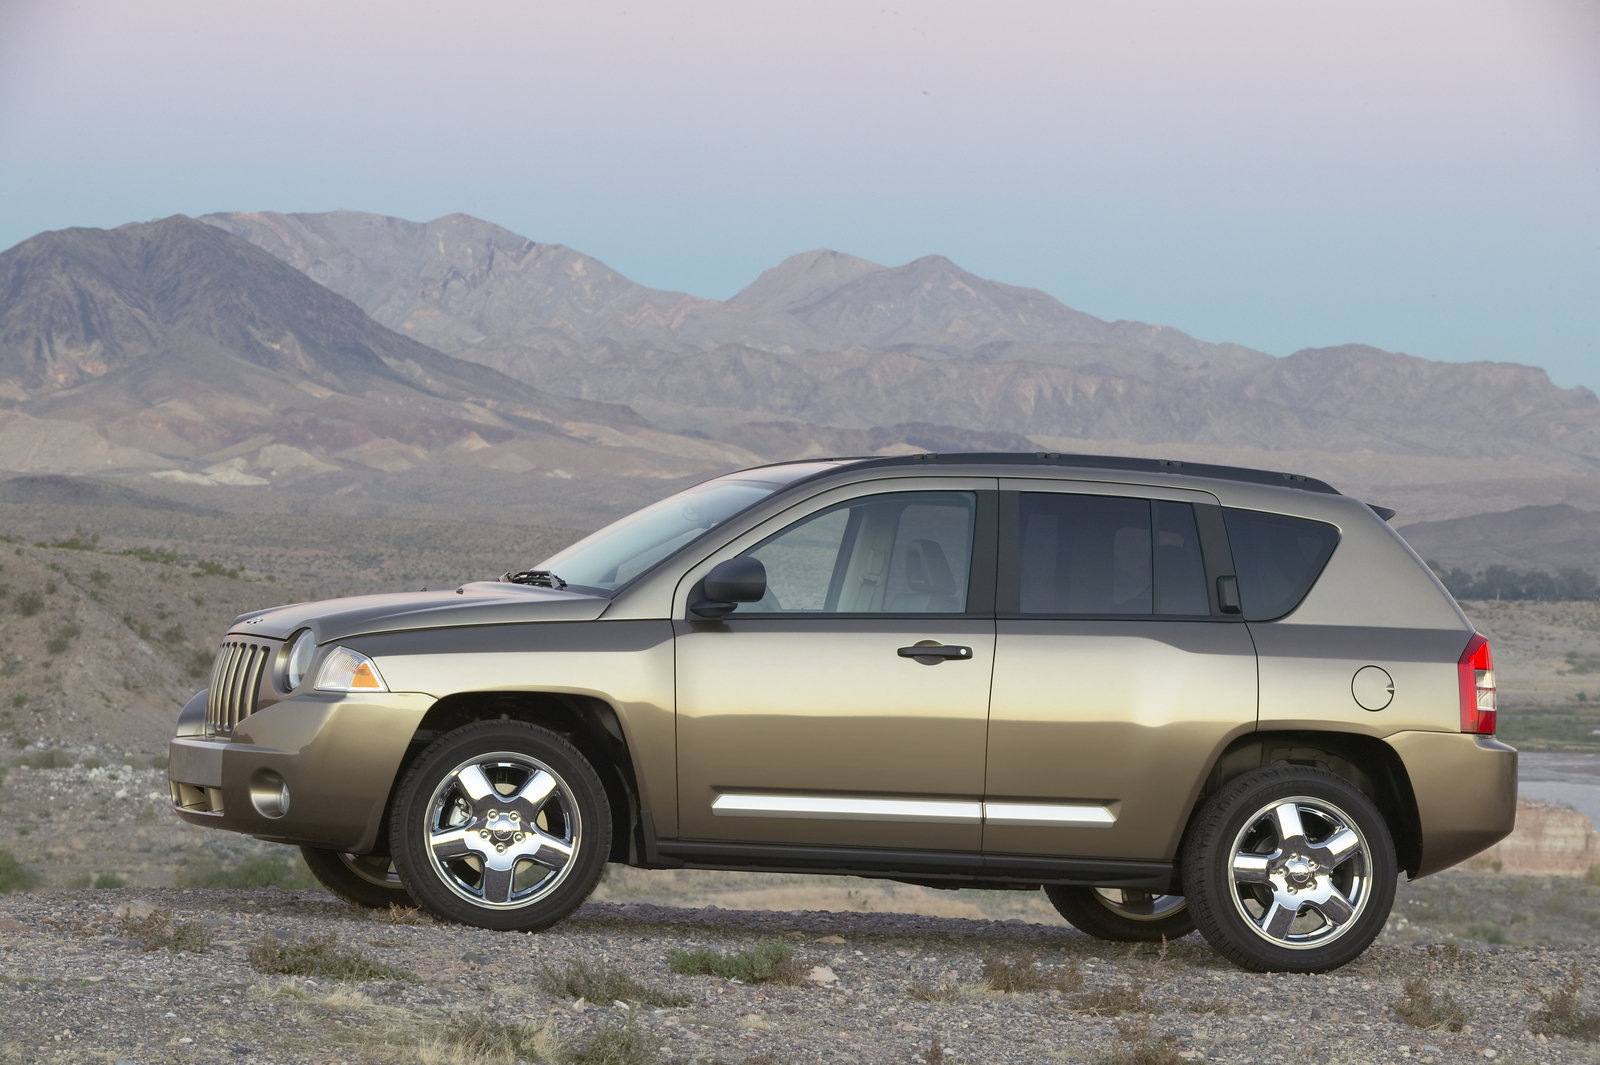 2007 jeep compass picture 38162 car review top speed. Black Bedroom Furniture Sets. Home Design Ideas